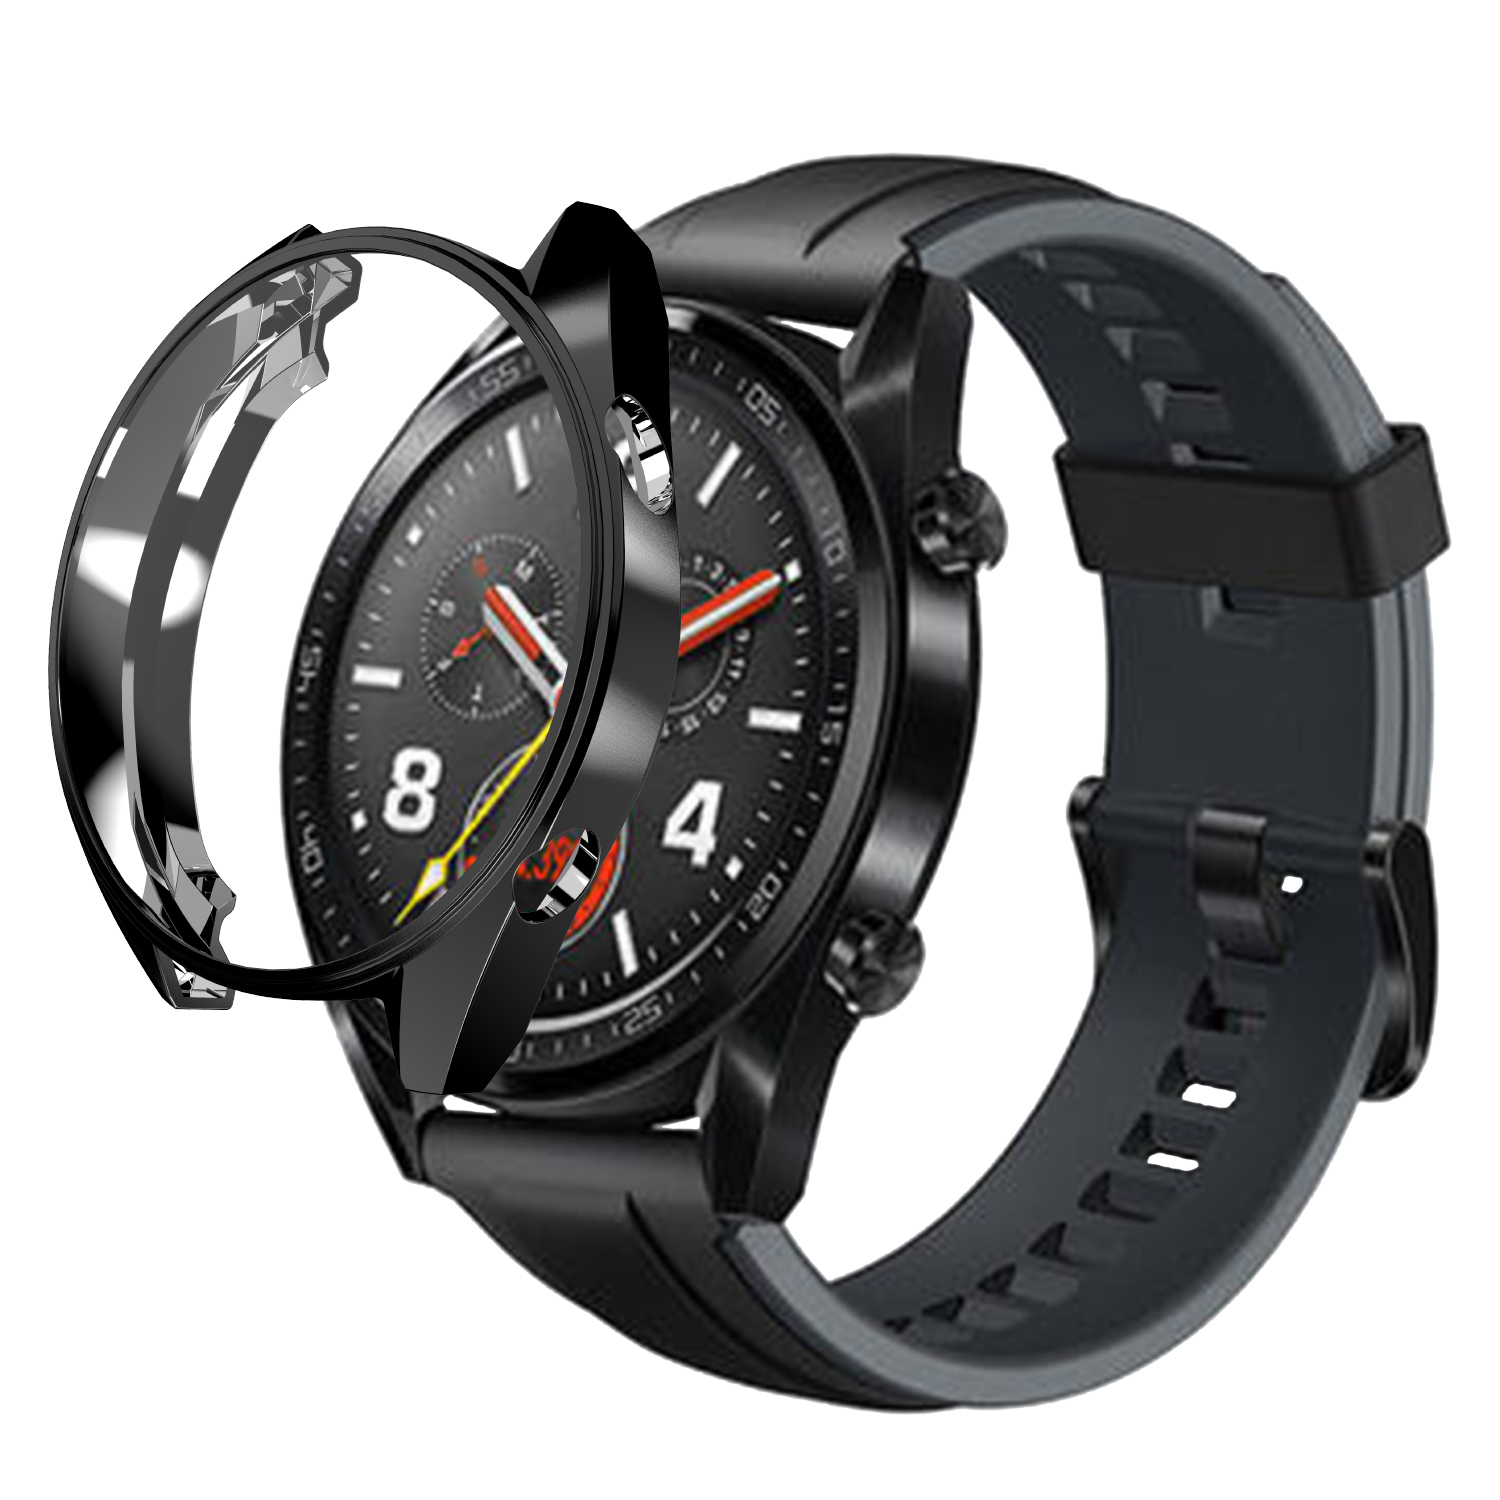 Chrome TPU Slim Smart Watch Protective Case Cover for Huawei Watch GT Cases Frame Anti-Scratch Shell Smartwatch Accessories